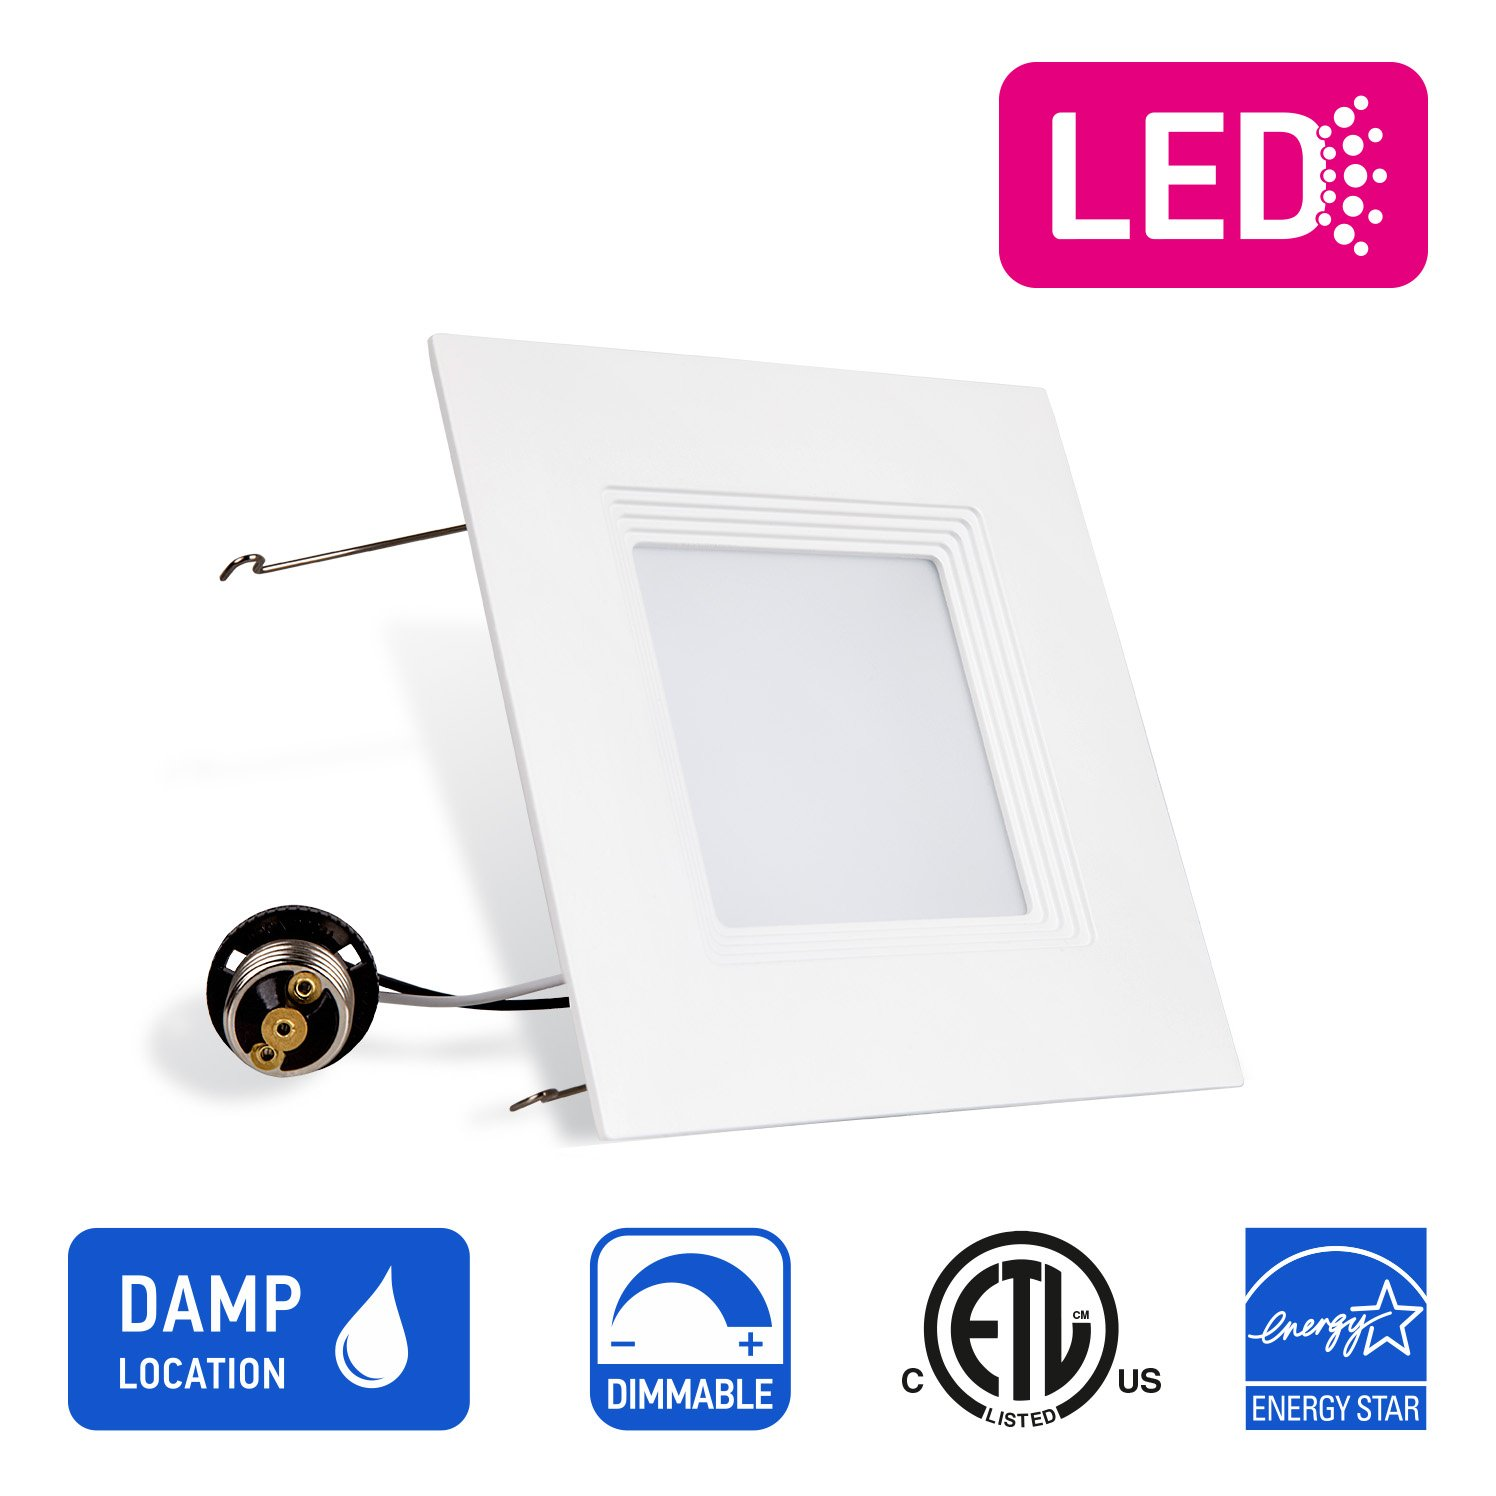 OSTWIN Recessed Lighting, Led 6-inch Can Pot Lights for Ceiling, Square Downlight Retrofit Kit Fixture, Baffle Trim, 16.5W (120 Watt), 5000K (Daylight) Dimmable, ETL & Energy Star Listed